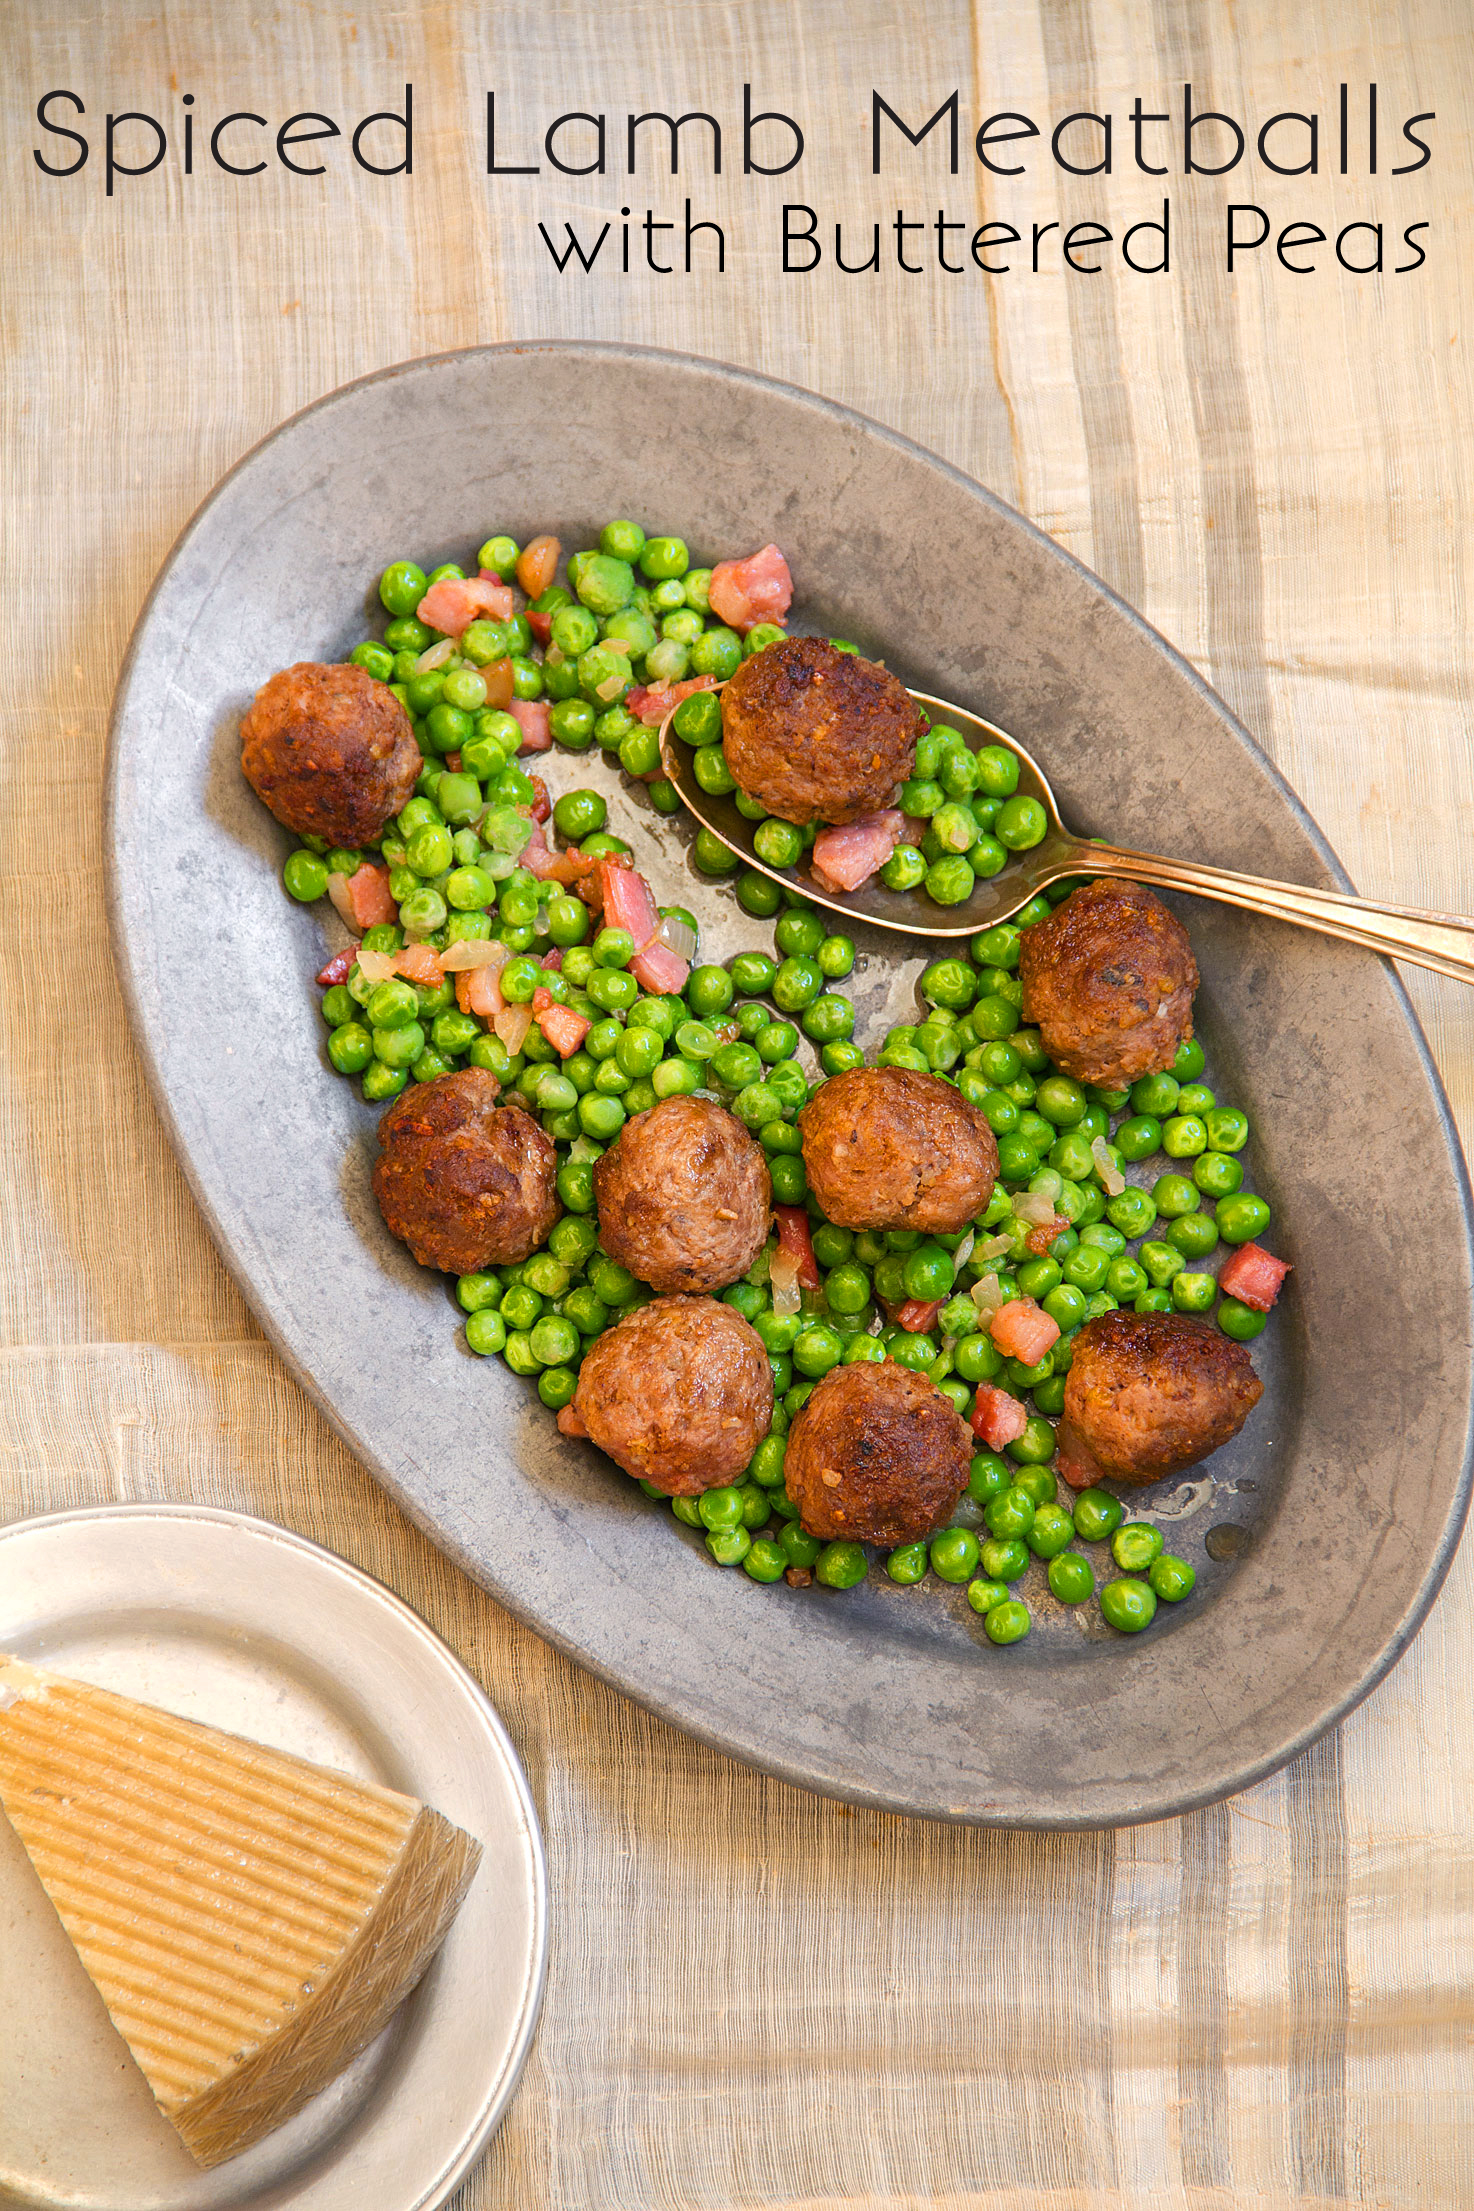 Spiced Lamb Meatballs with Hot Buttered Peas